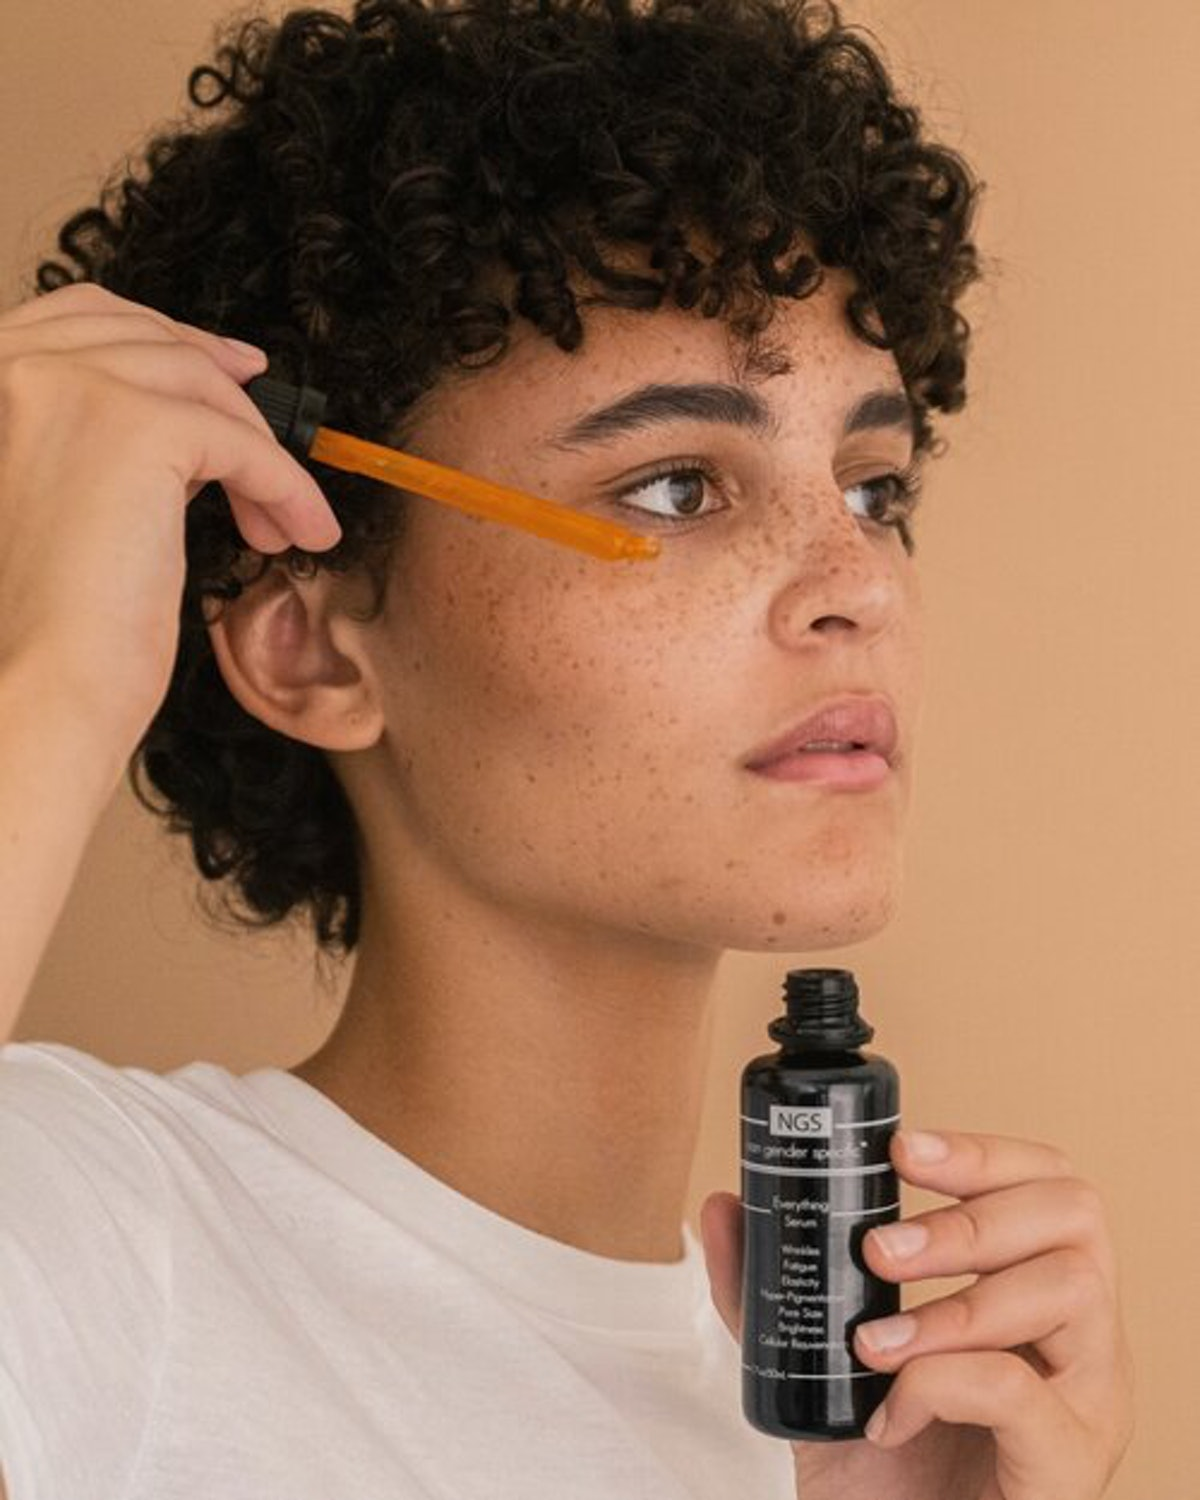 Model putting on Non Gender Specific's Everything Serum.